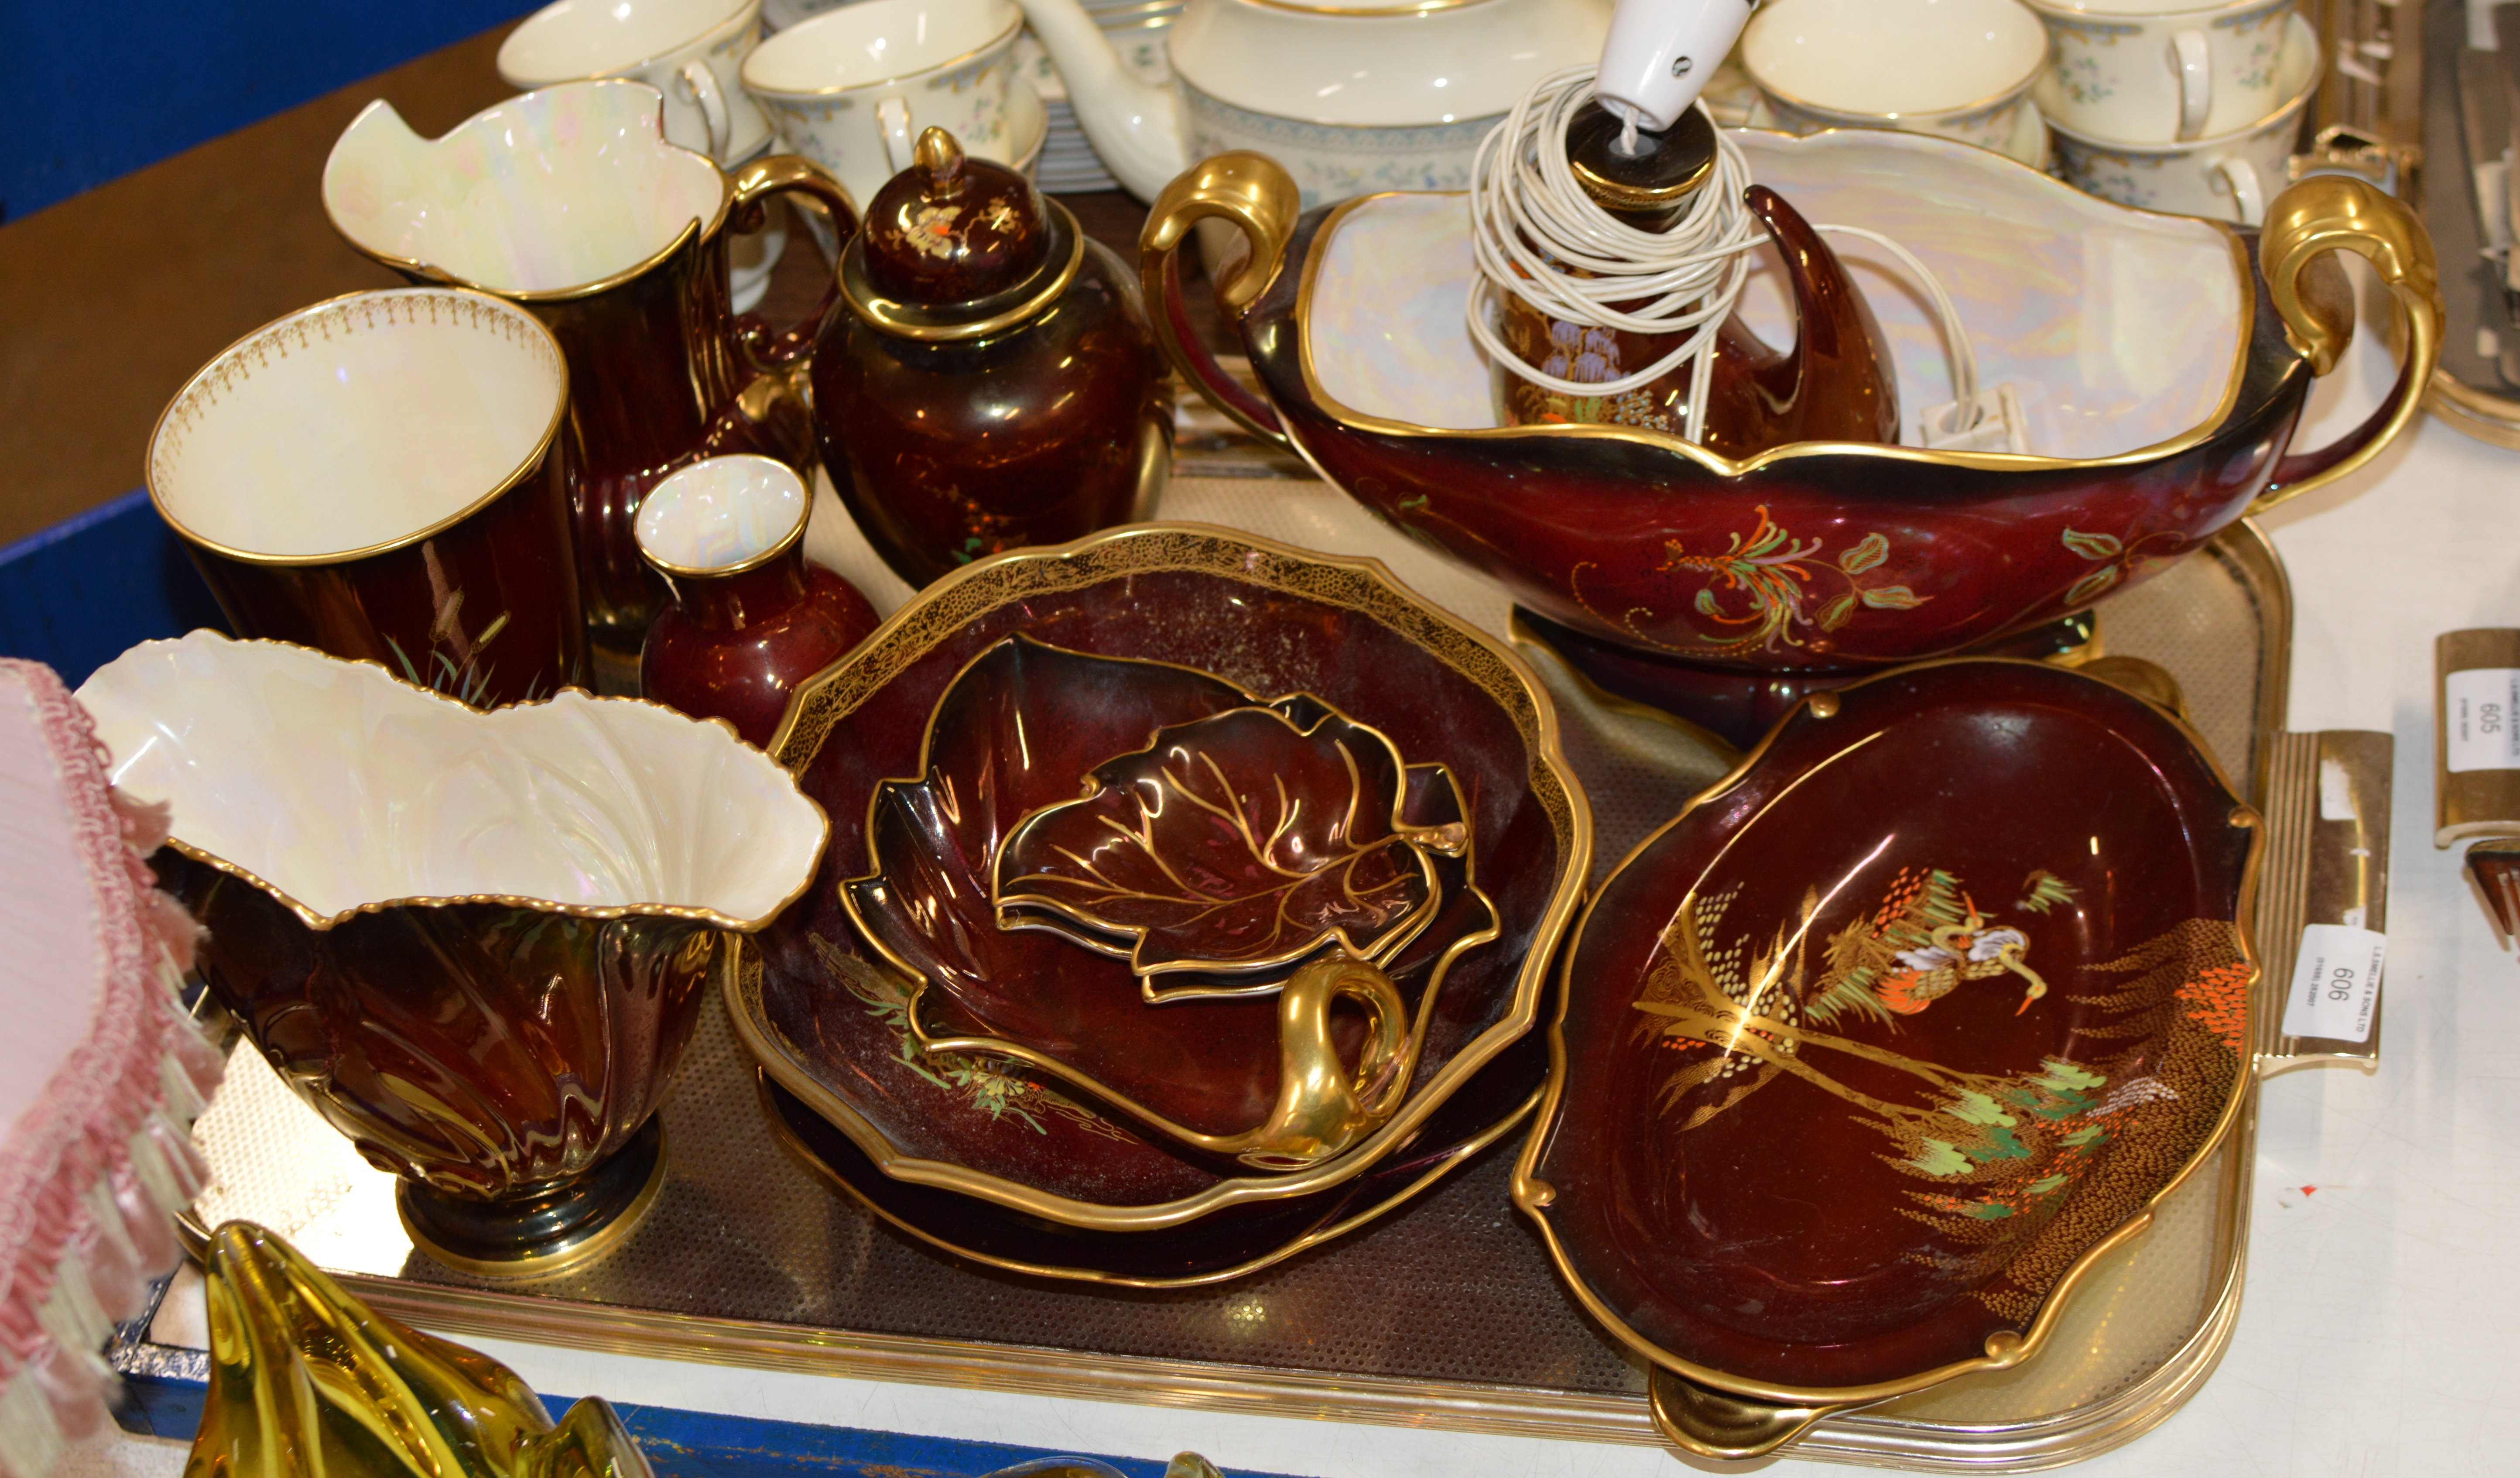 Lot 606 - TRAY CONTAINING VARIOUS CARLTON WARE ROUGE ROYALE VASES, LAMPS, JUG, PLATES, GINGER JAR ETC